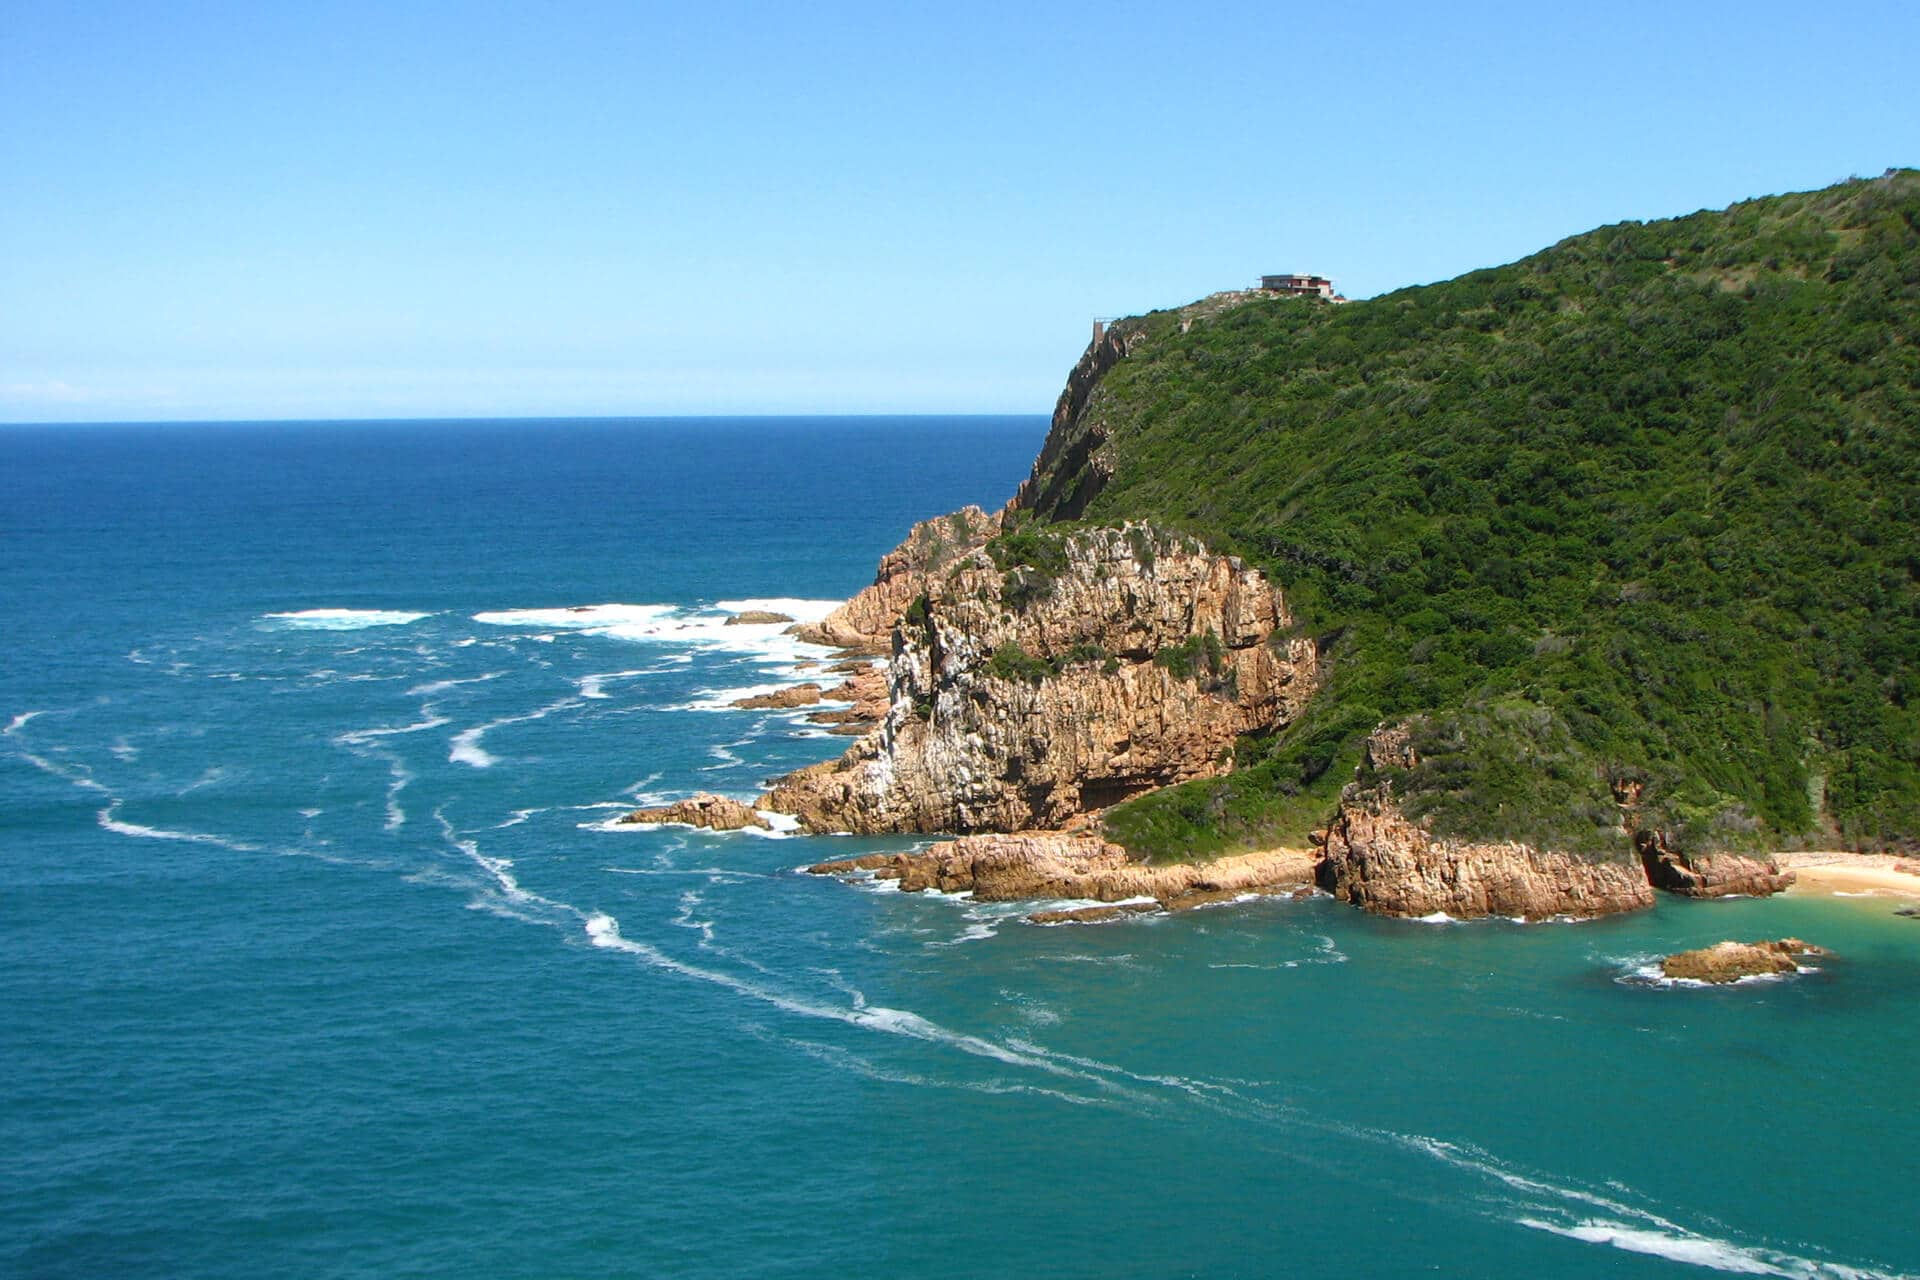 Ocean Odysey - Knysna Heads Adventure